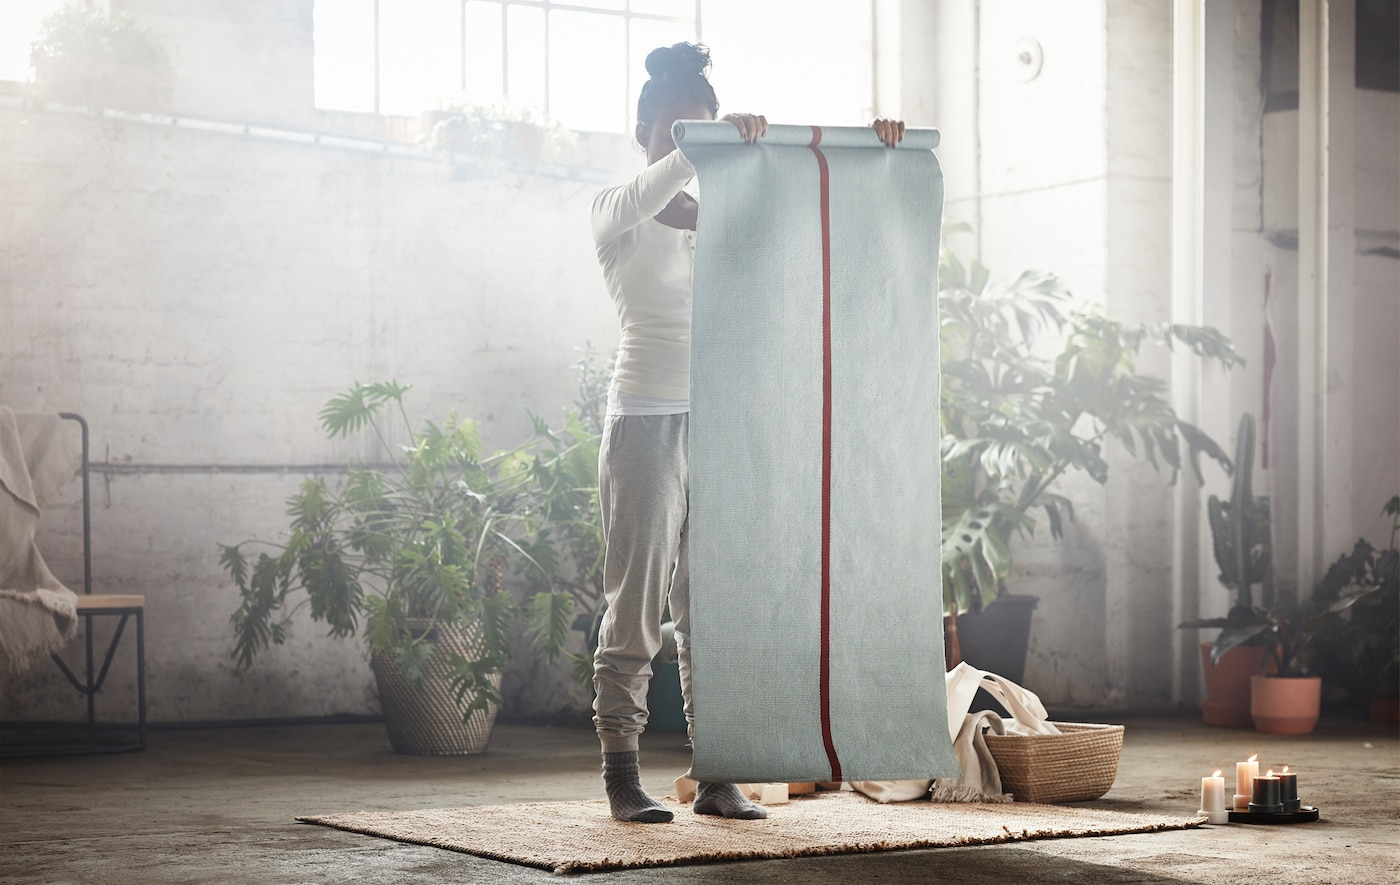 A woman holding up a yoga mat surrounded by indoor plants in a warehouse.